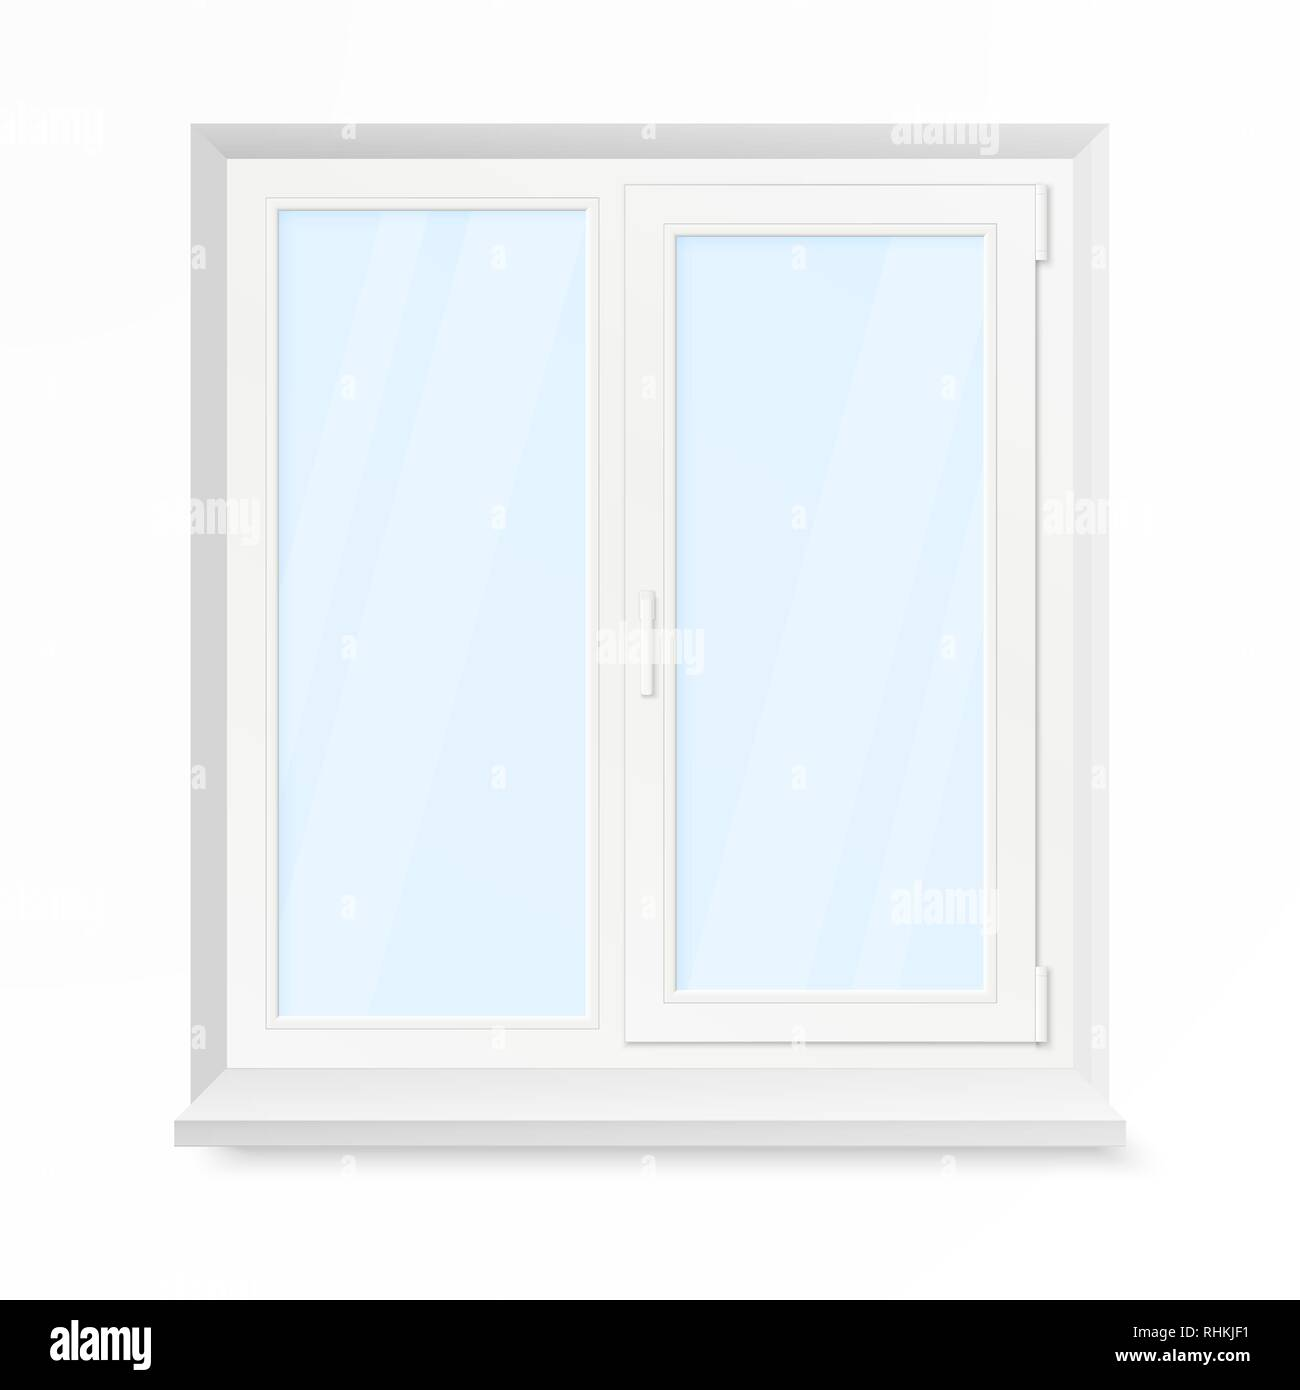 White Office Plastic Window. Window Front View. Vector Illustration Isolated on White Background - Stock Vector